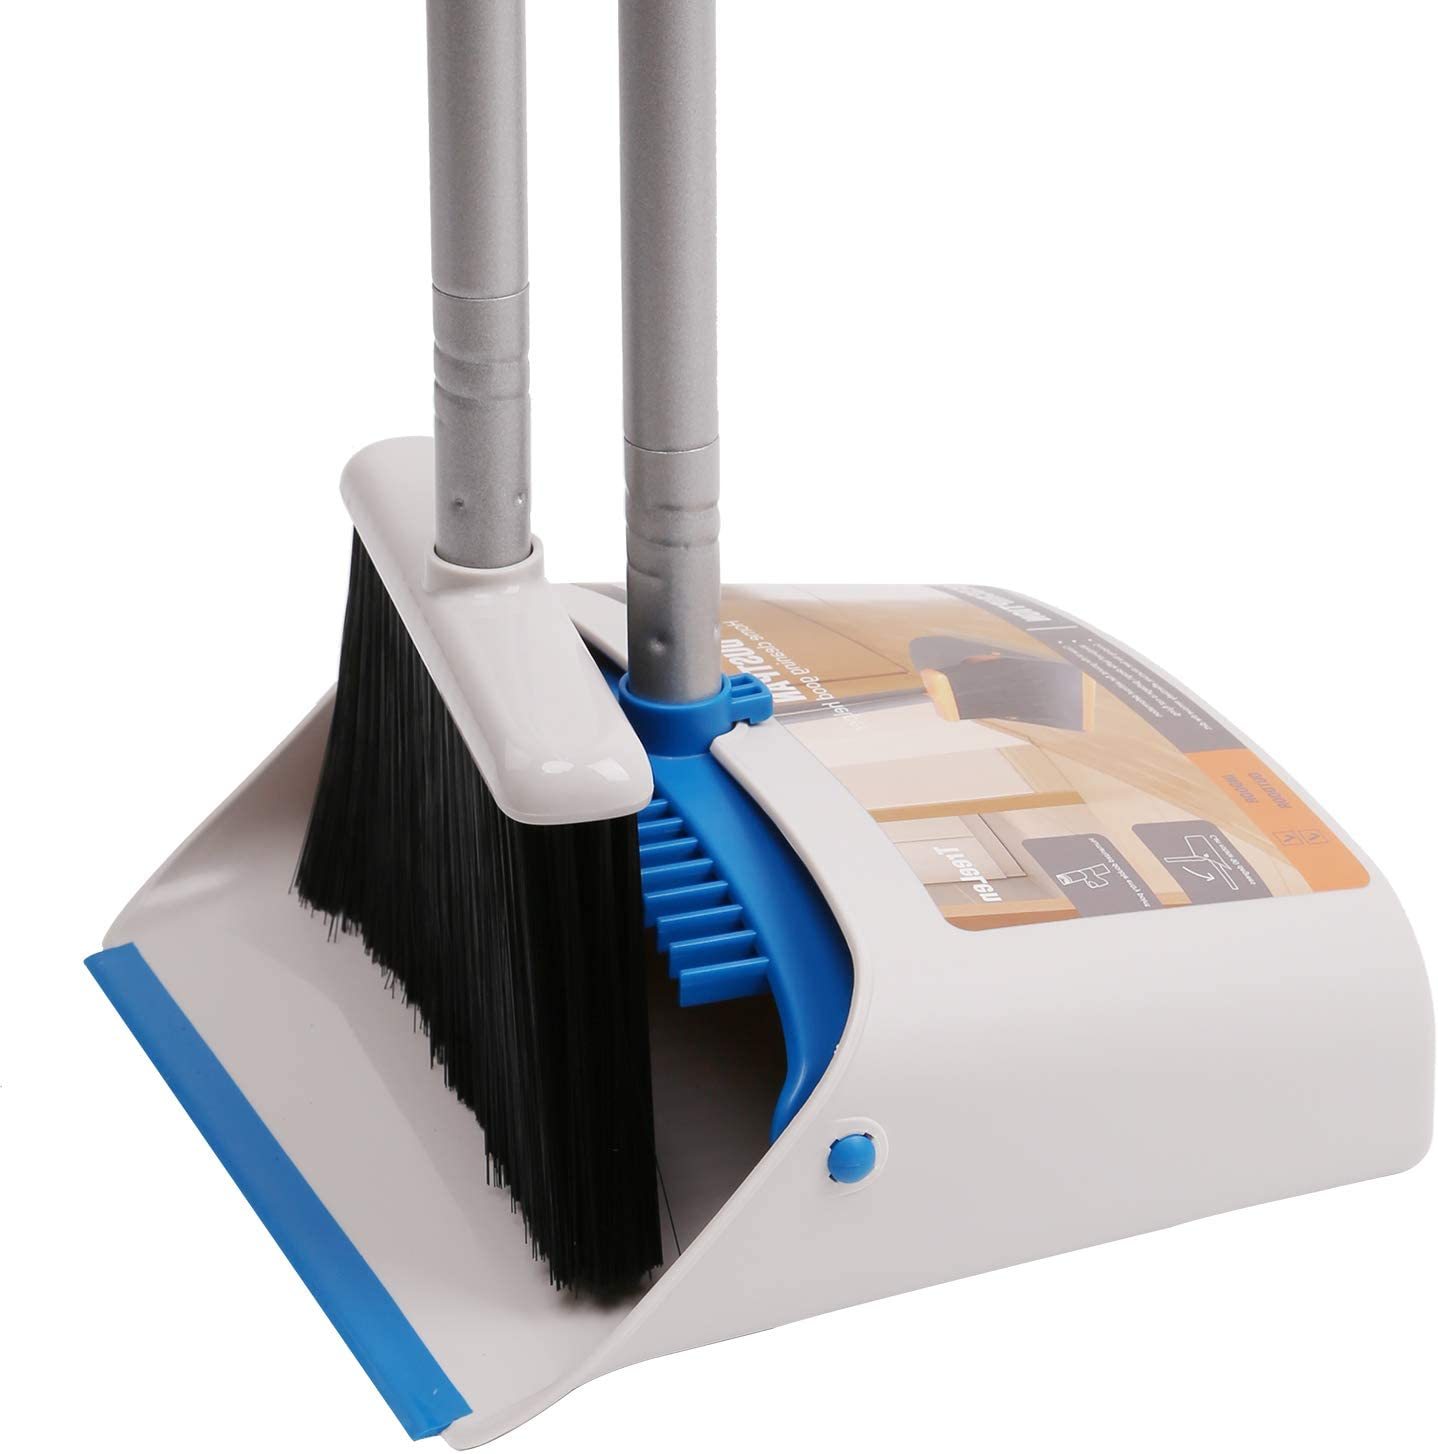 TreeLen Long Handle Broom and Dustpan Set,Upright Dust Pan Combo for Home, Kitchen, Room, Office, Lobby Floor Use Without Bending: Home & Kitchen